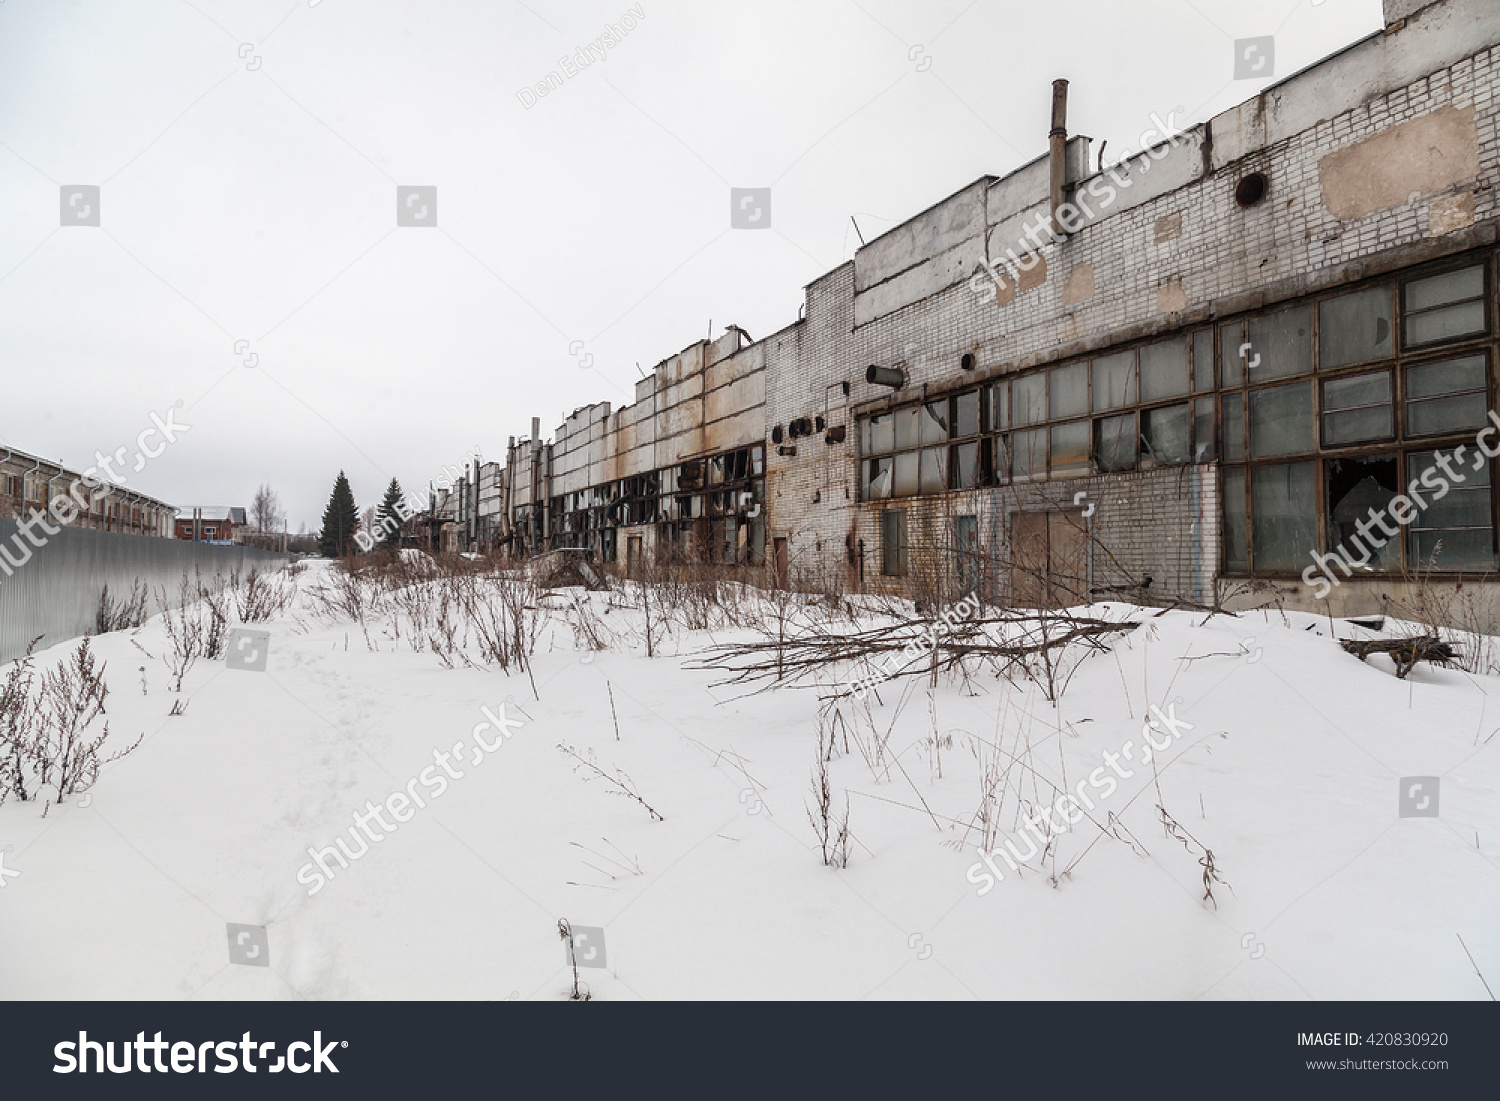 Exterior Old Abandoned Industrial Russian Factory Stock Photo ... for Abandoned Factory Russia  51ane